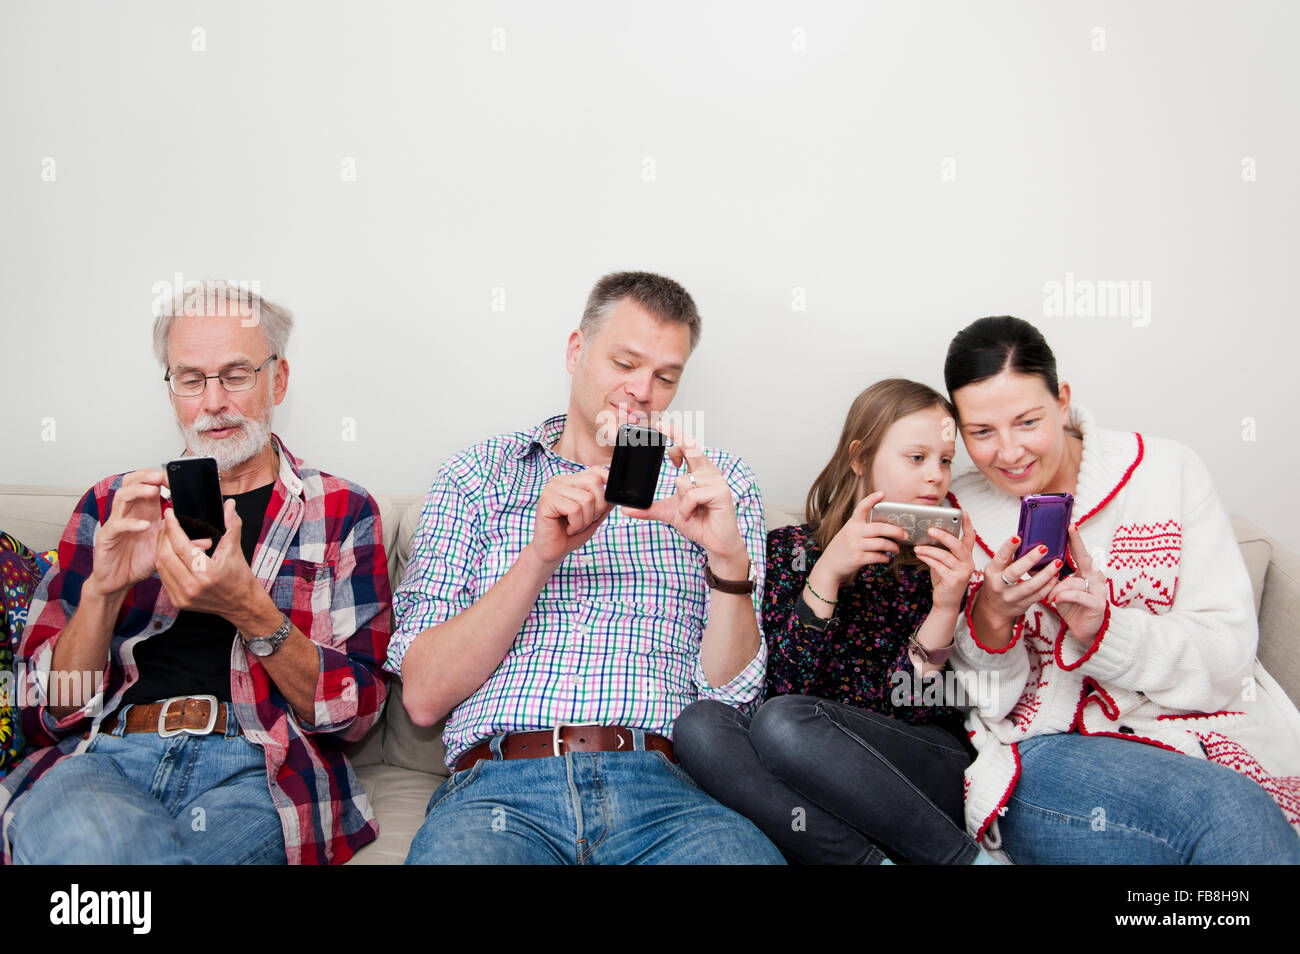 Girl (8-9) texting with family on sofa - Stock Image